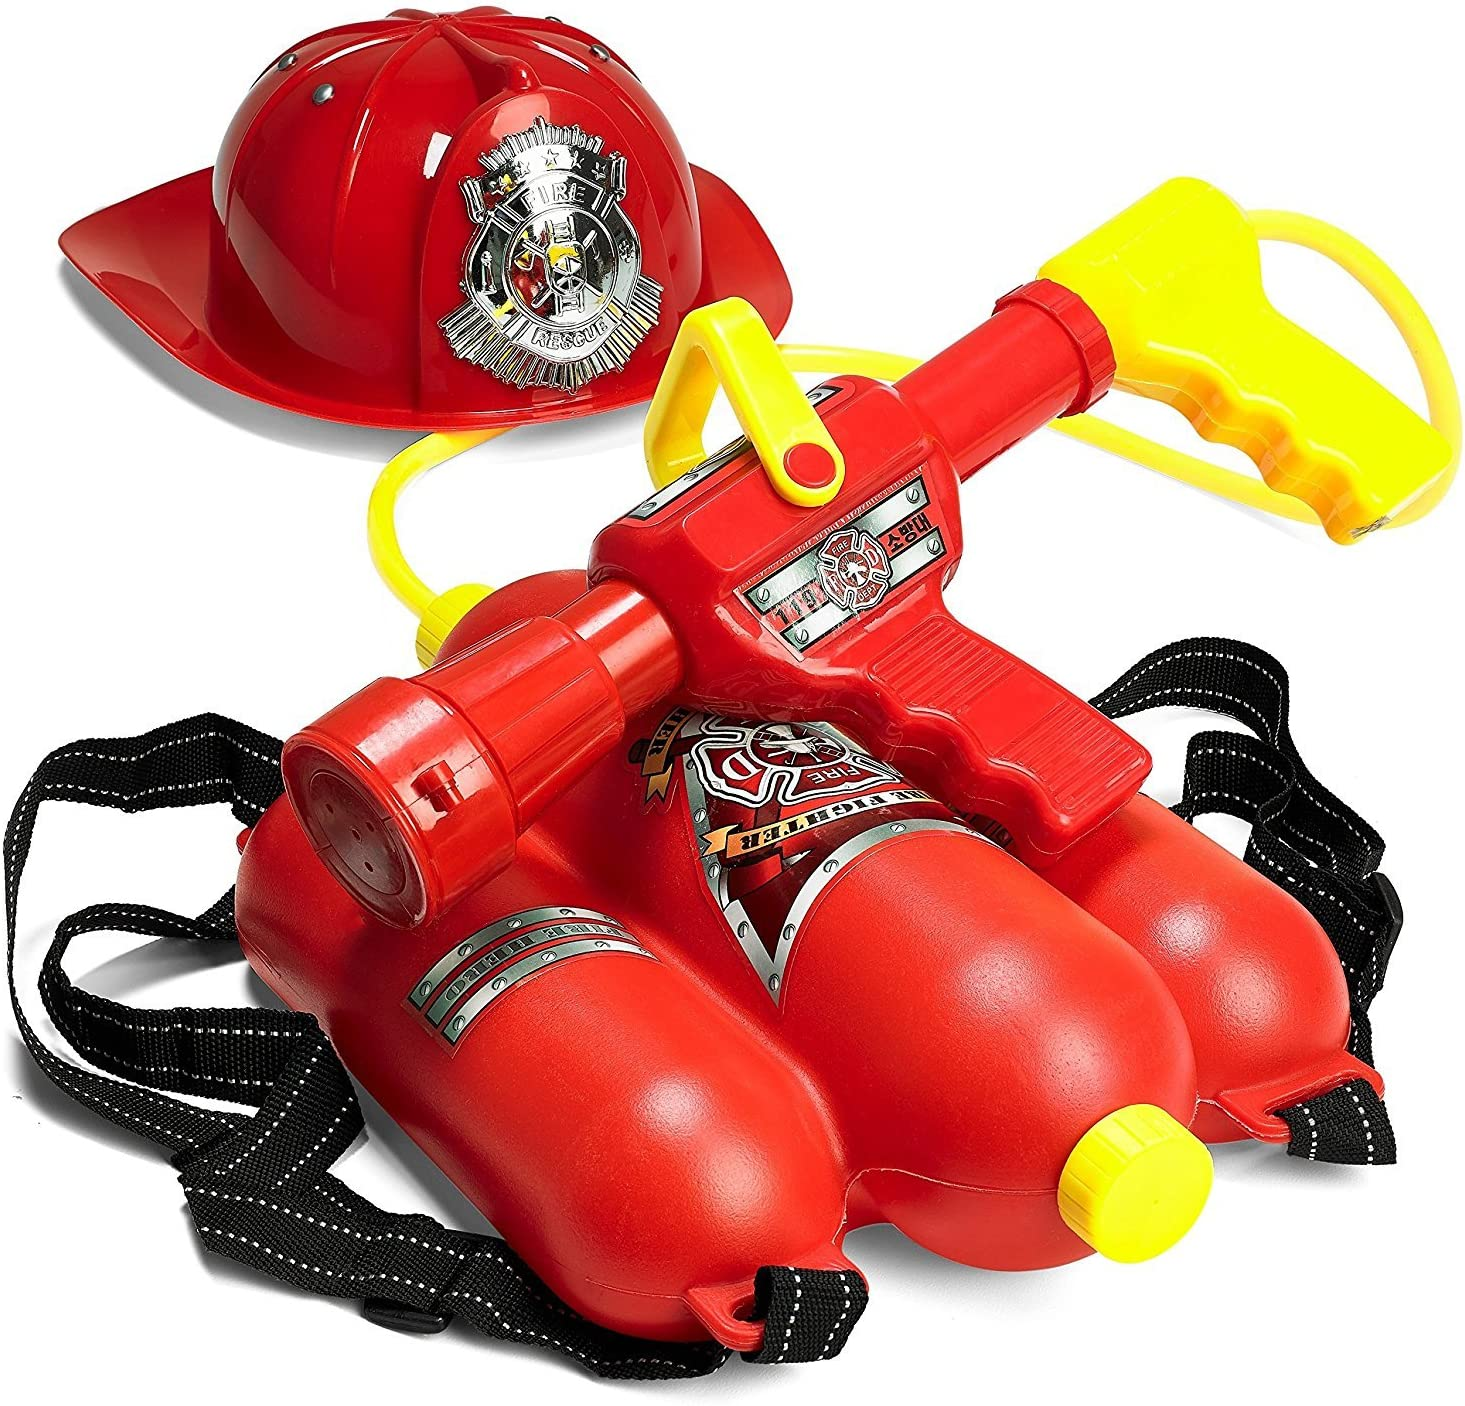 Prextex Fireman Backpack Water Shooter and Blaster with Fire Hat- Water Gun Beach Toy and Outdoor Sports Toy: Toys & Games